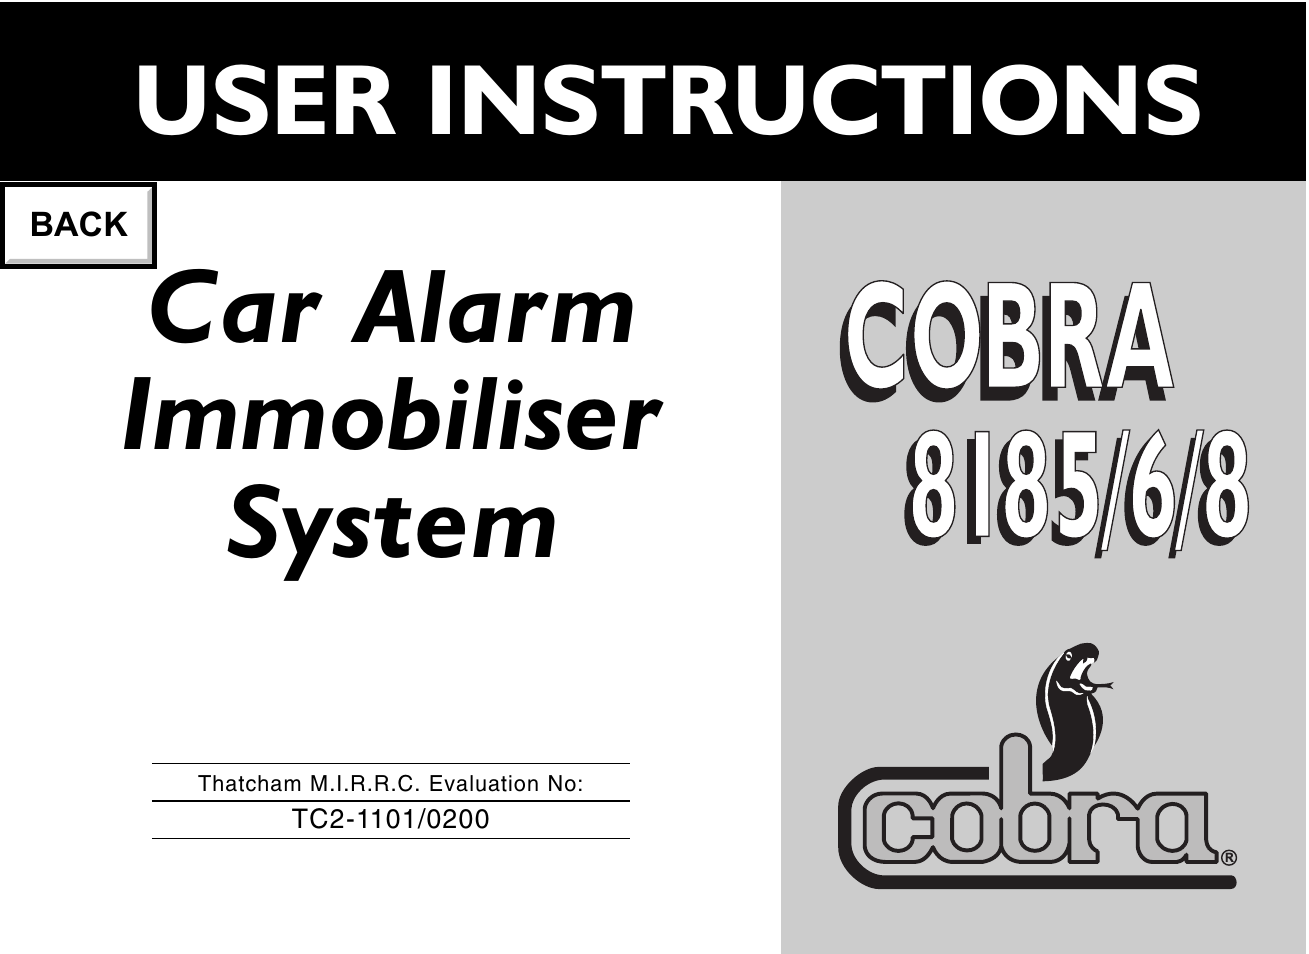 cobra electronics 8185 page1 flashpoint car alarm wiring diagram \u2022 indy500 co flashpoint car alarm wiring diagram at n-0.co